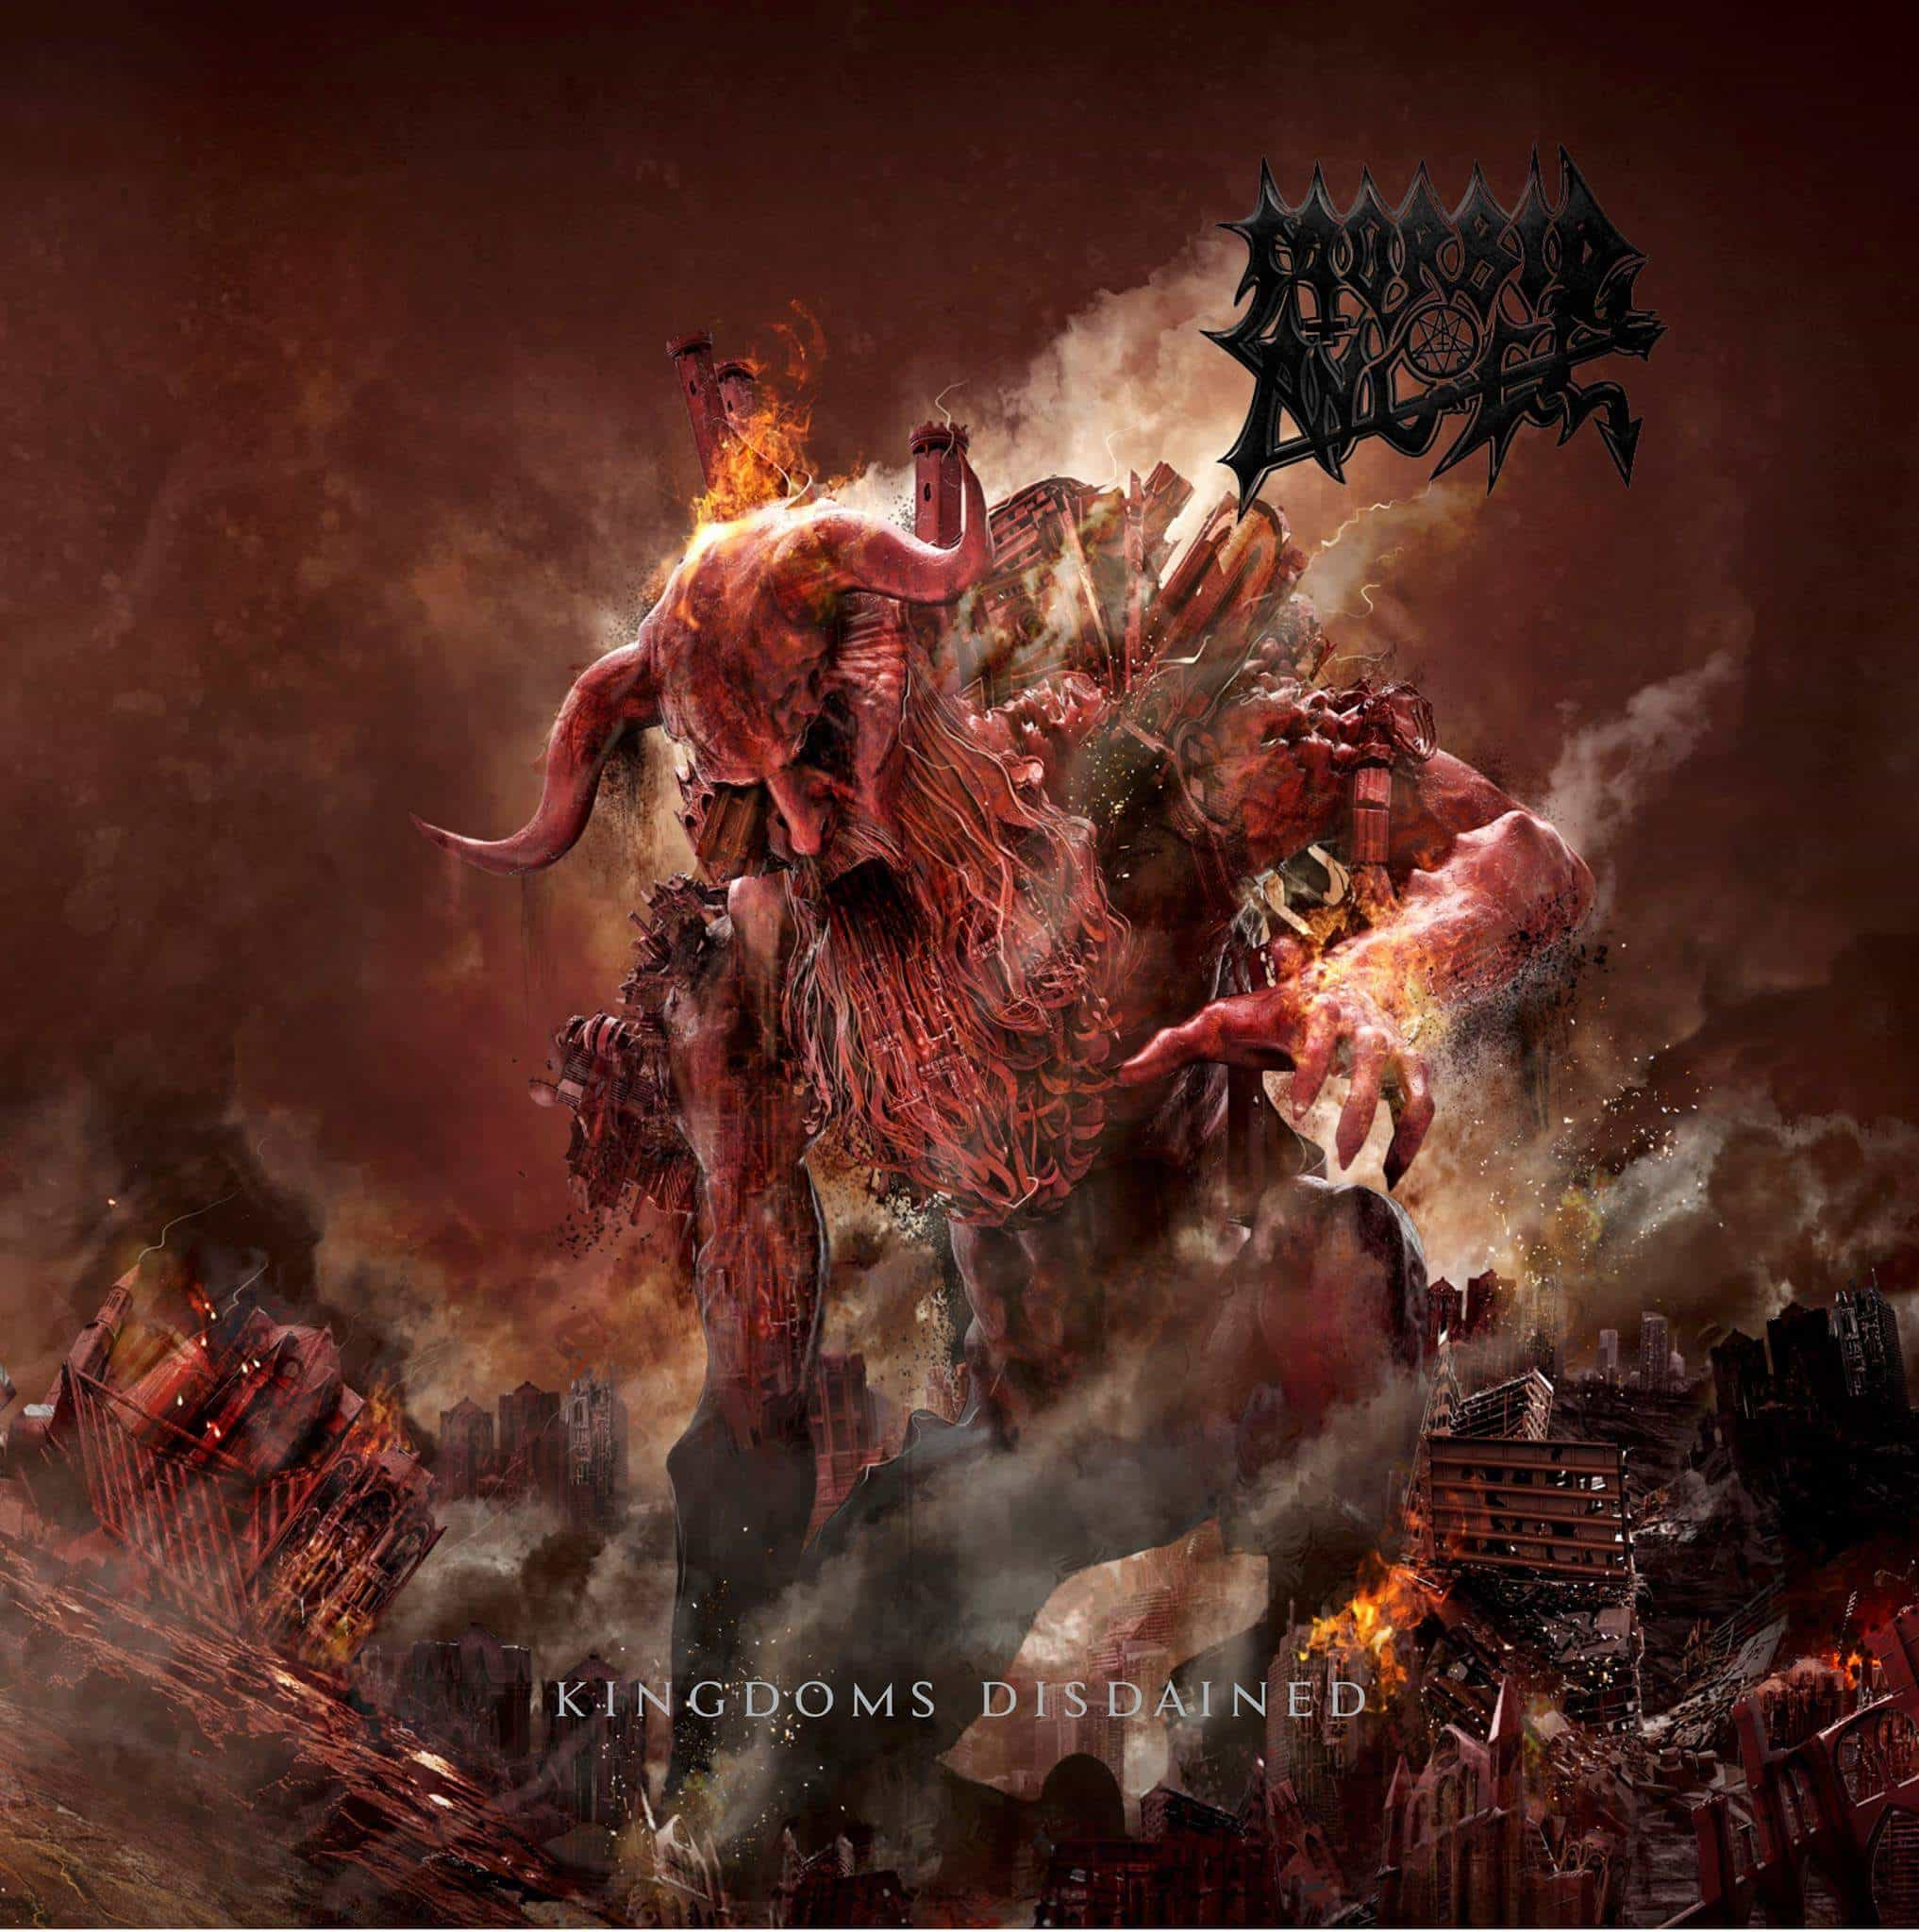 morbid-angel-kingdoms-disdained.jpg